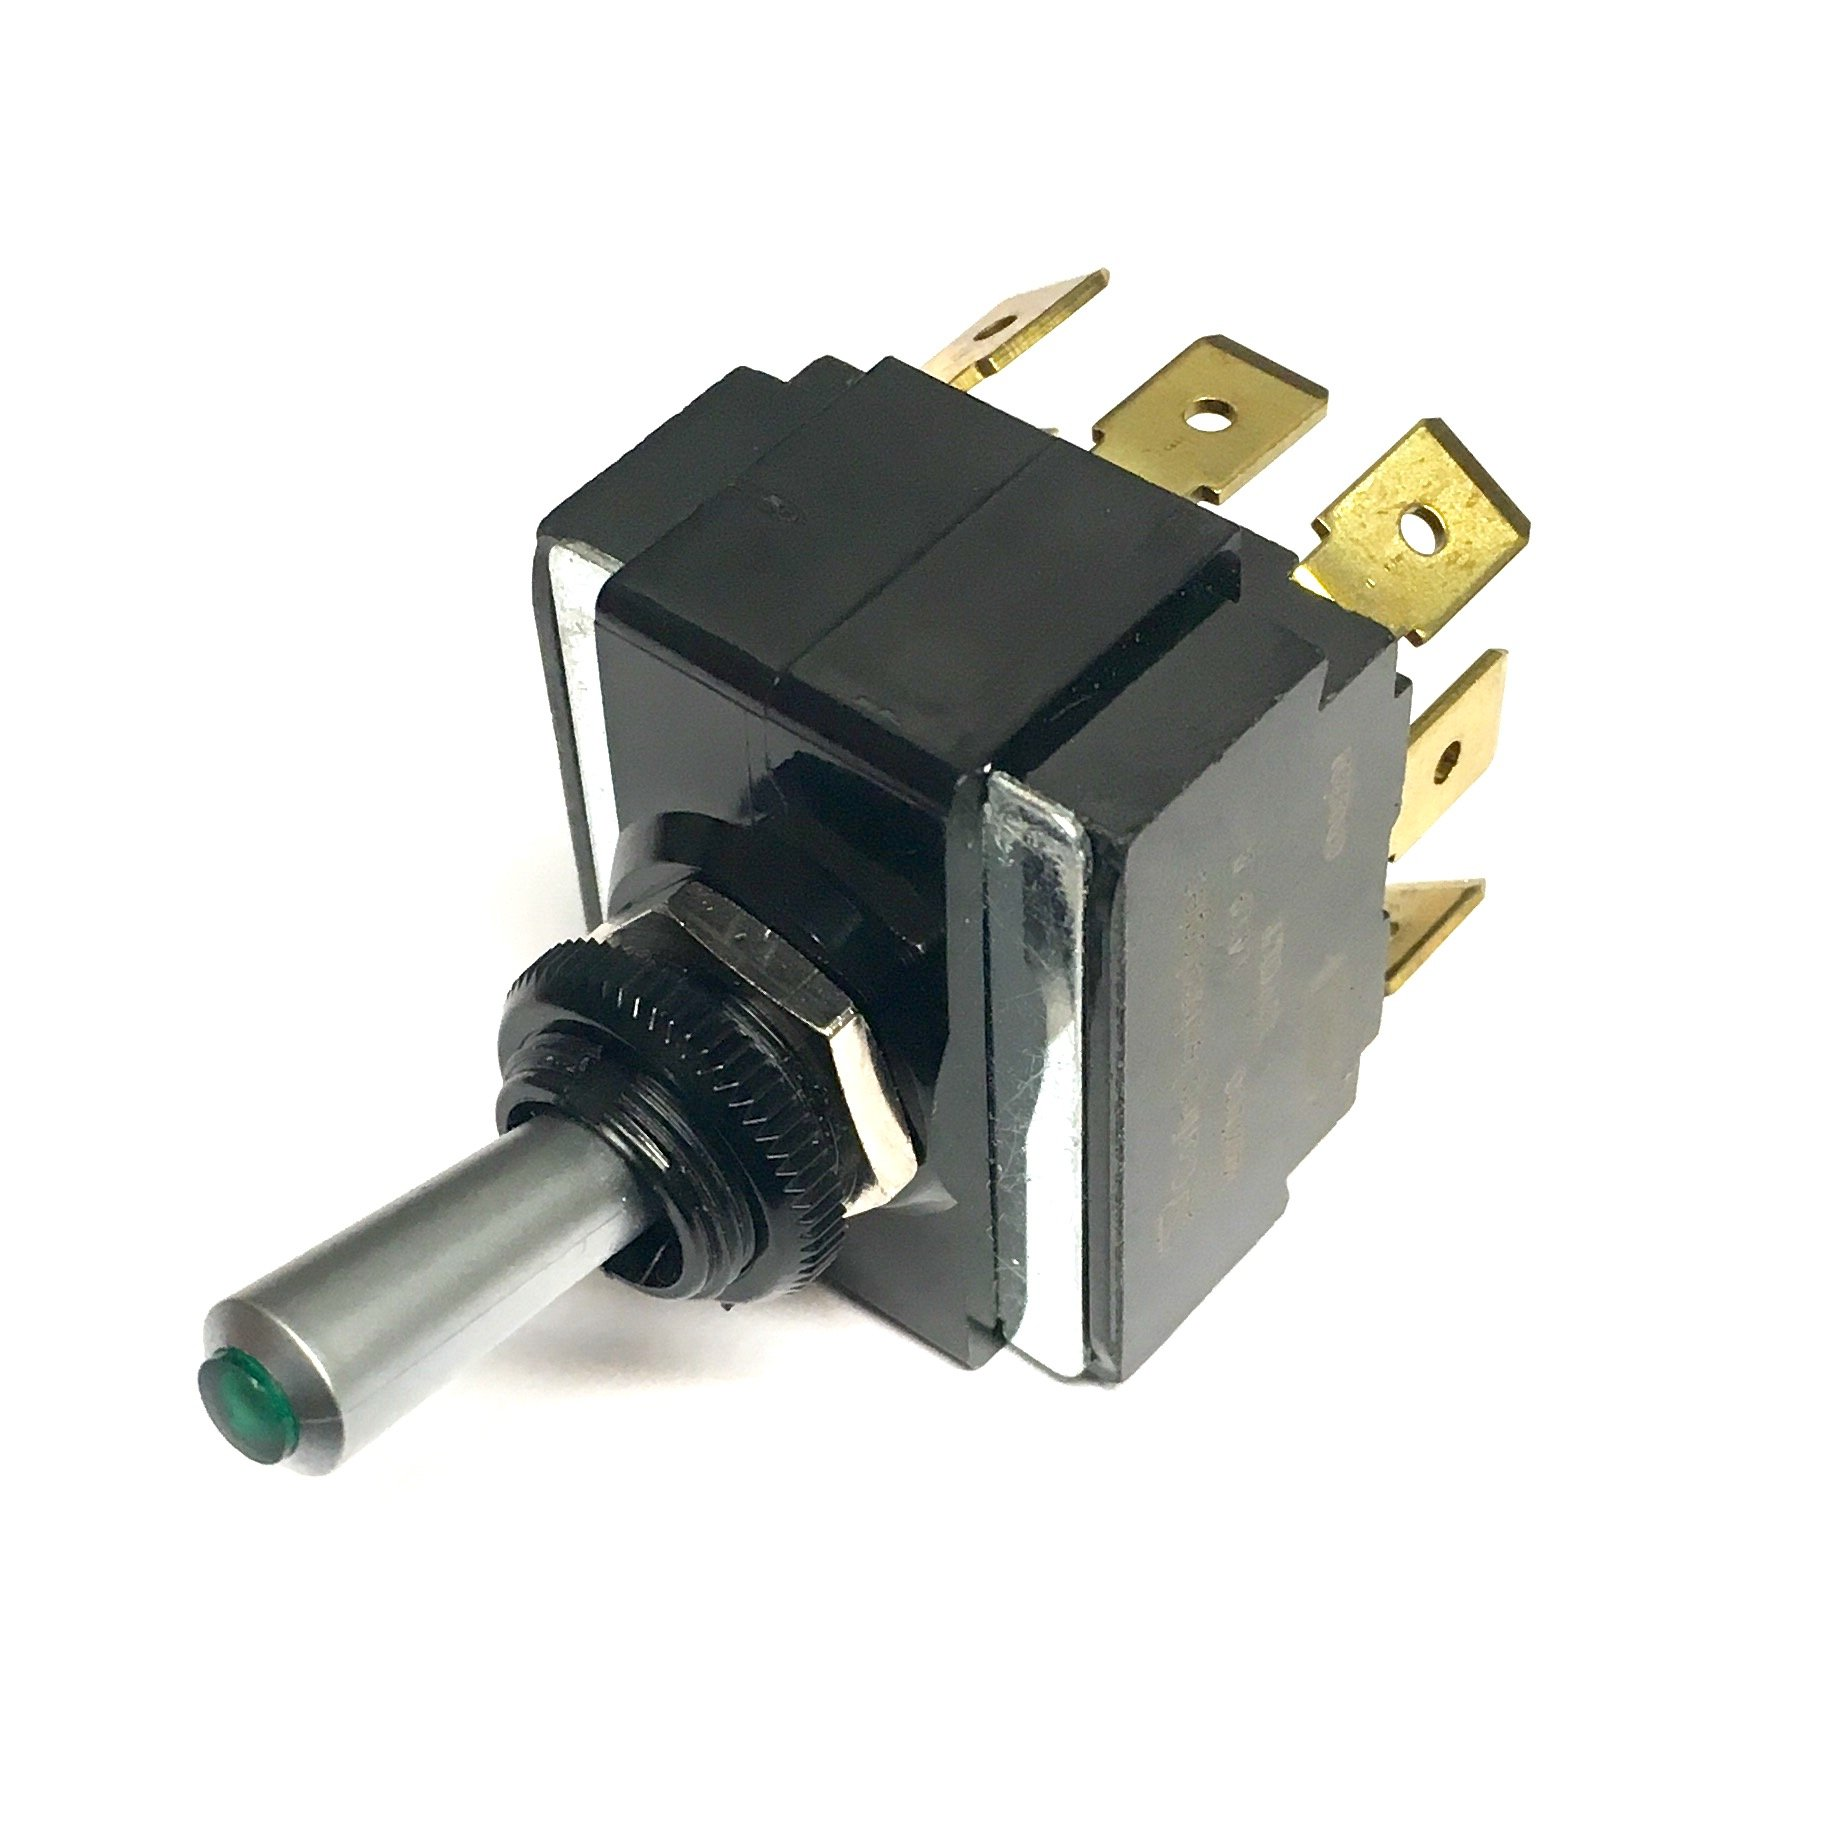 Toggle Switch ON/OFF/ON, DPDT, Lighted Green Lens, Lighted Toggle Switch by Carling/Cole Herse switches